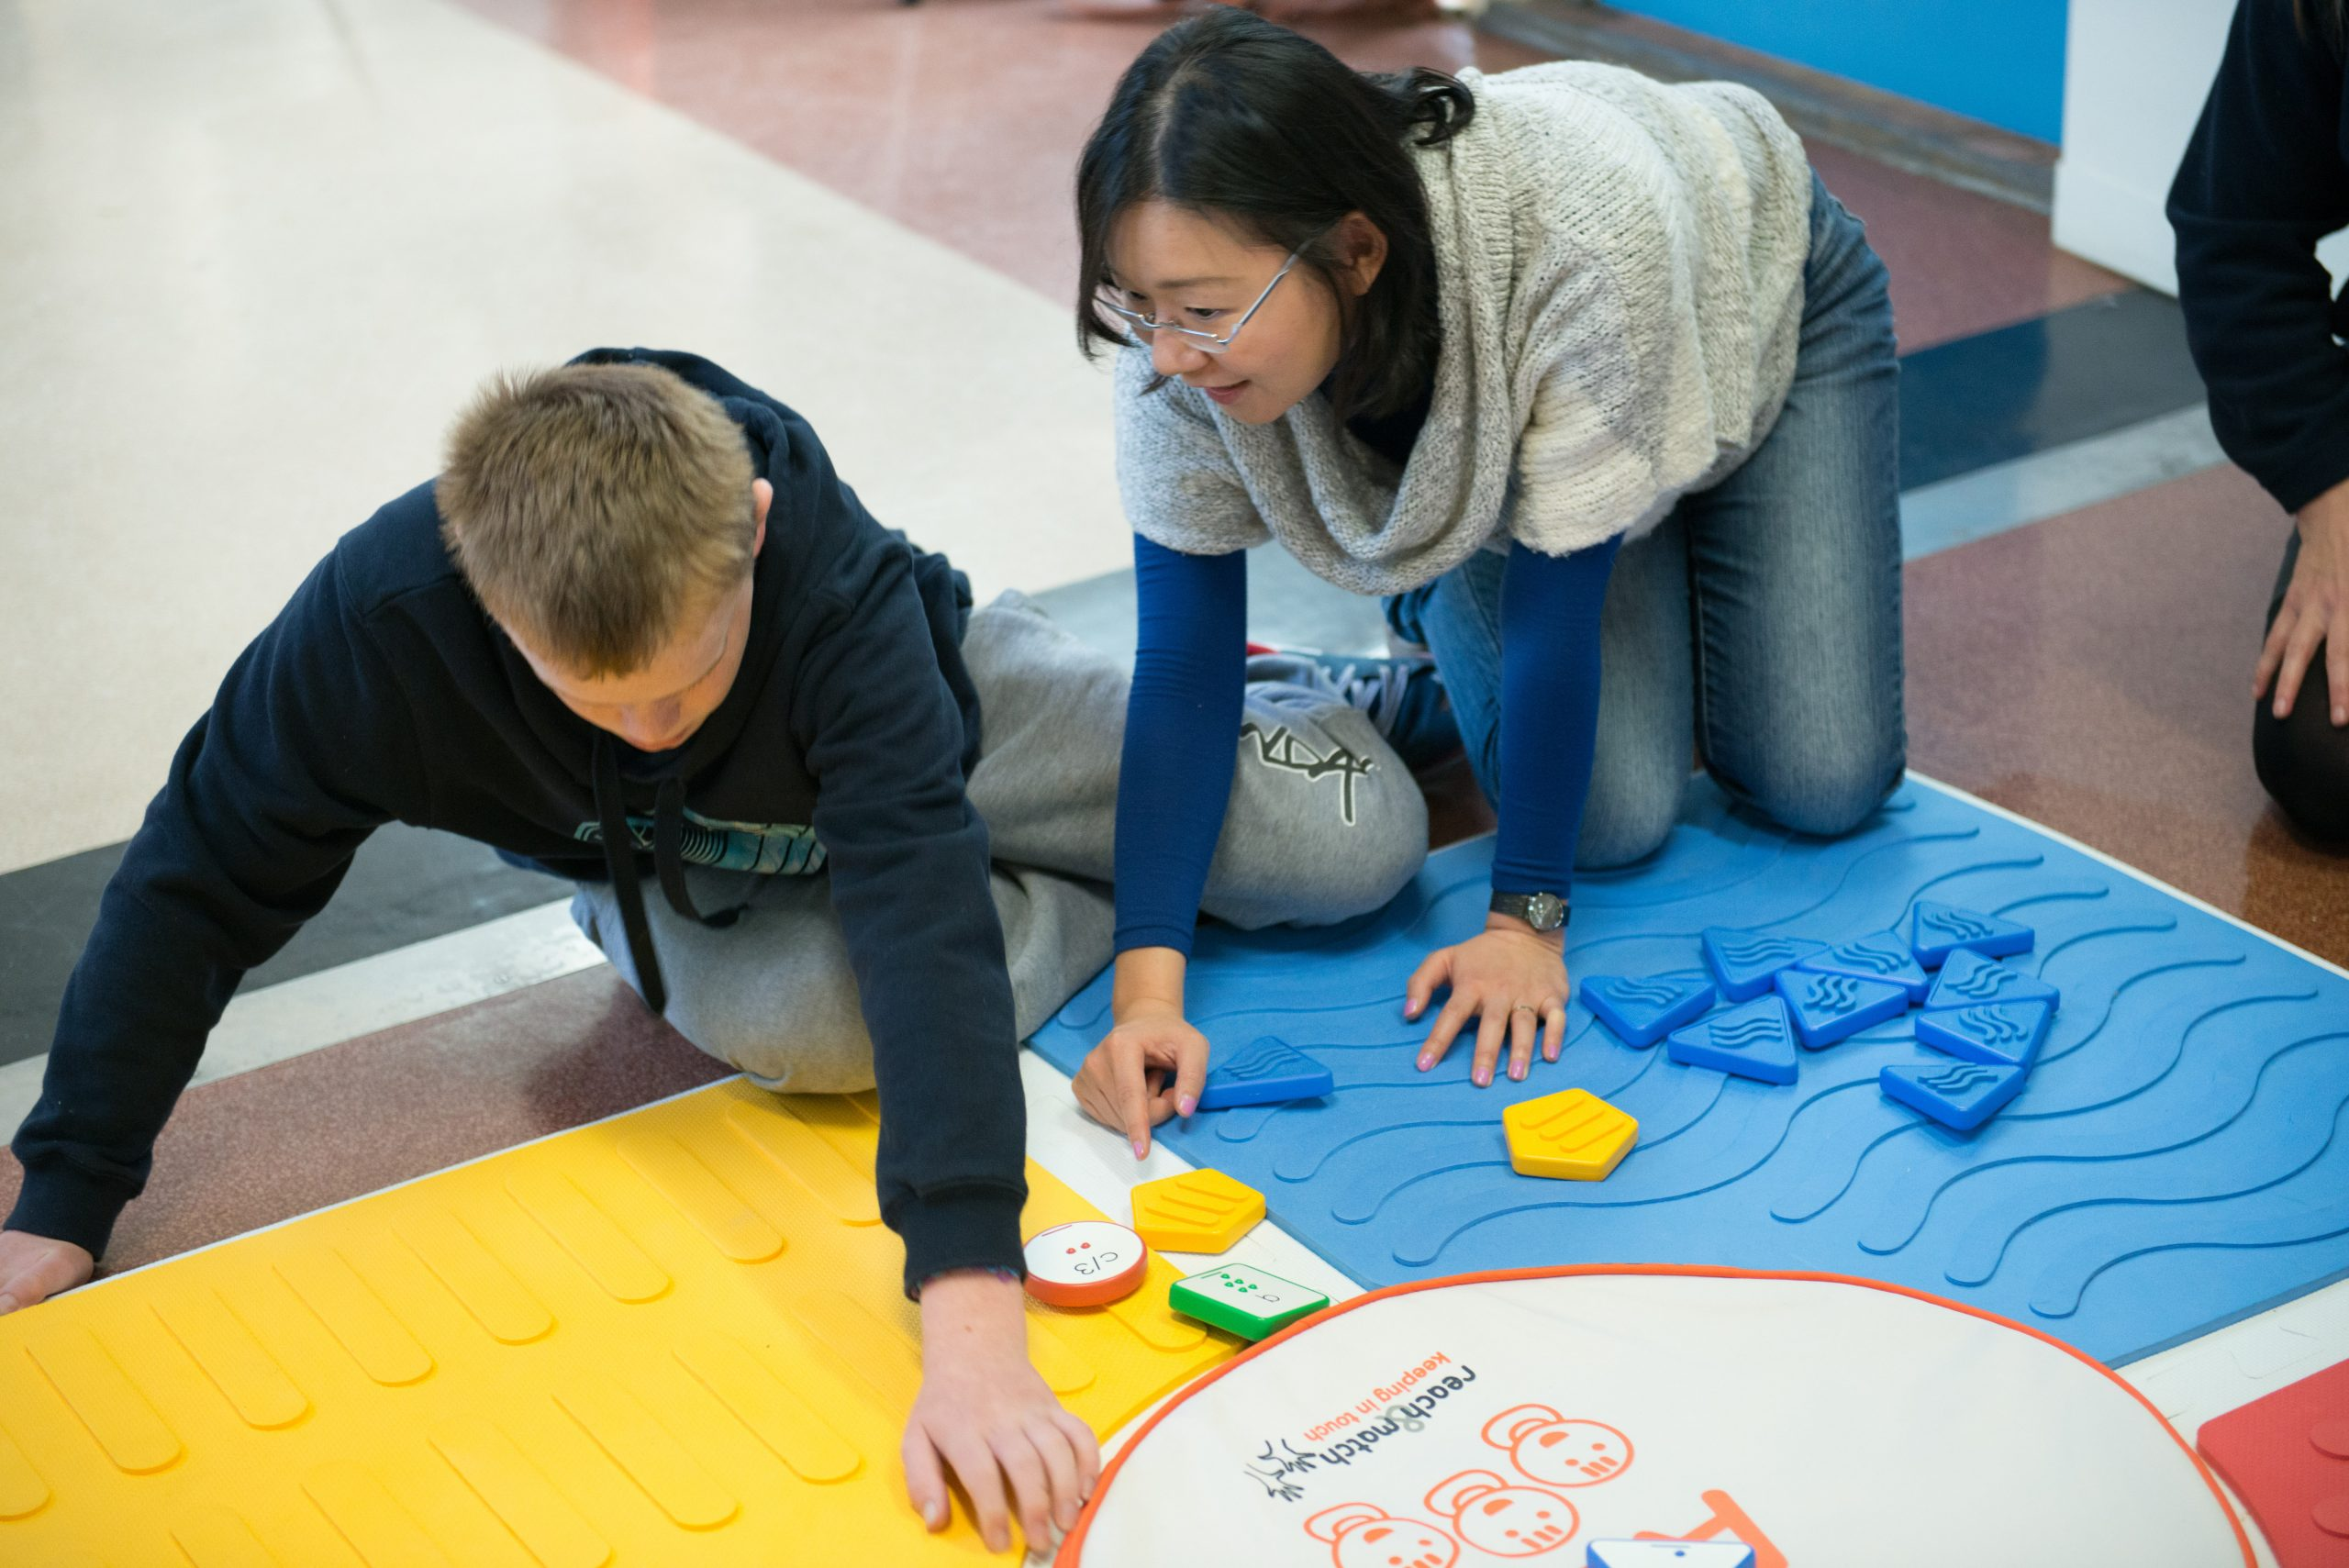 mandy lau teaches a blind student how to play reach and match